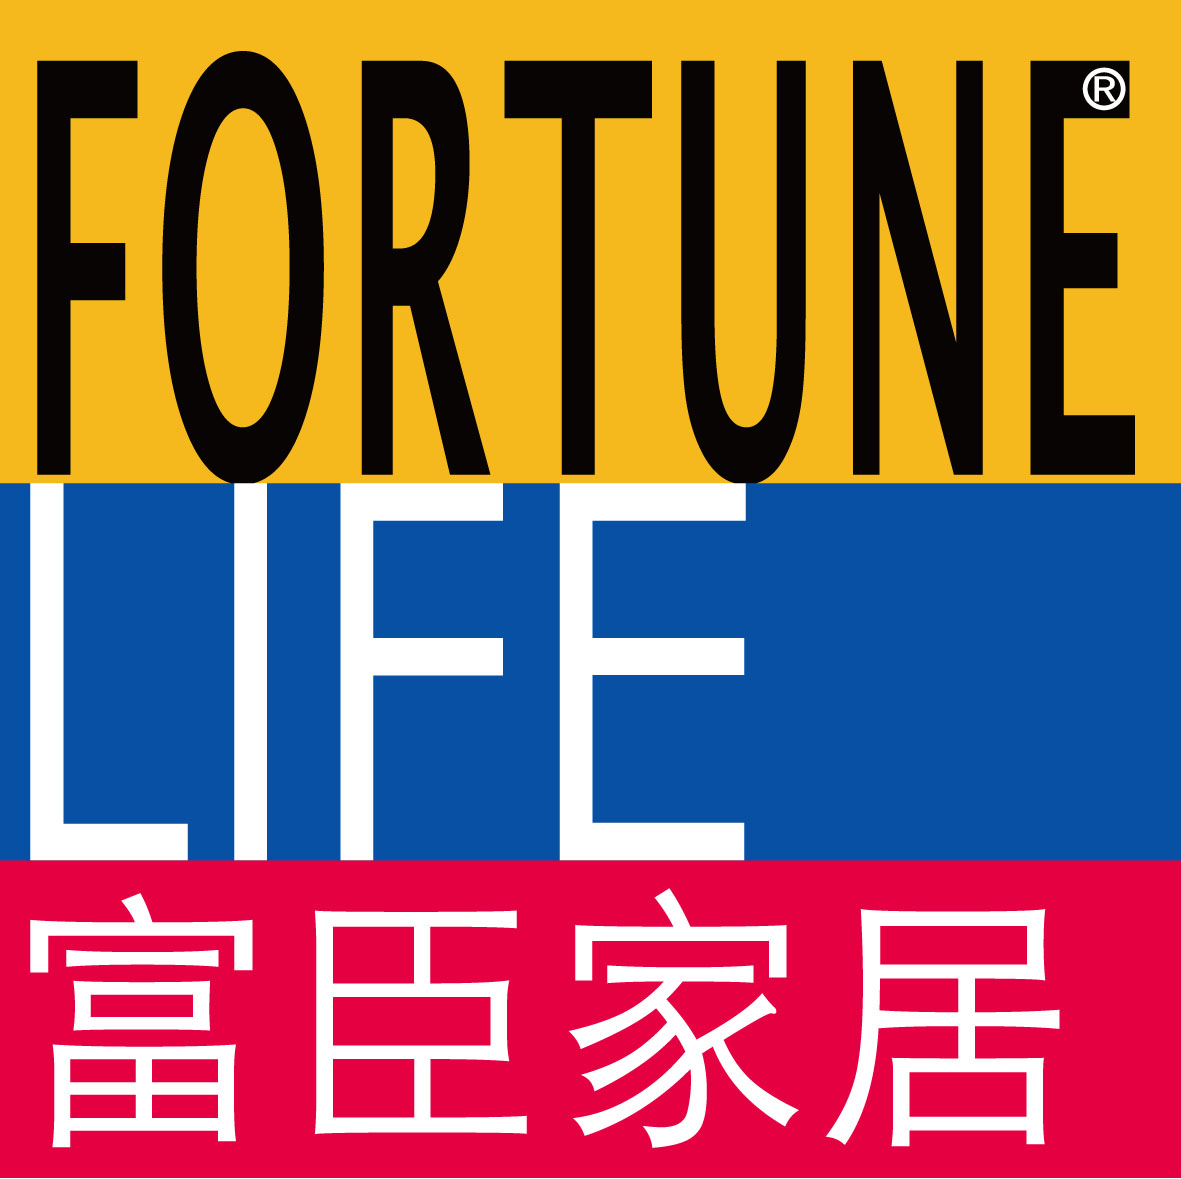 FUZHOU FORTUNE HOMEWARE CO.,LTD